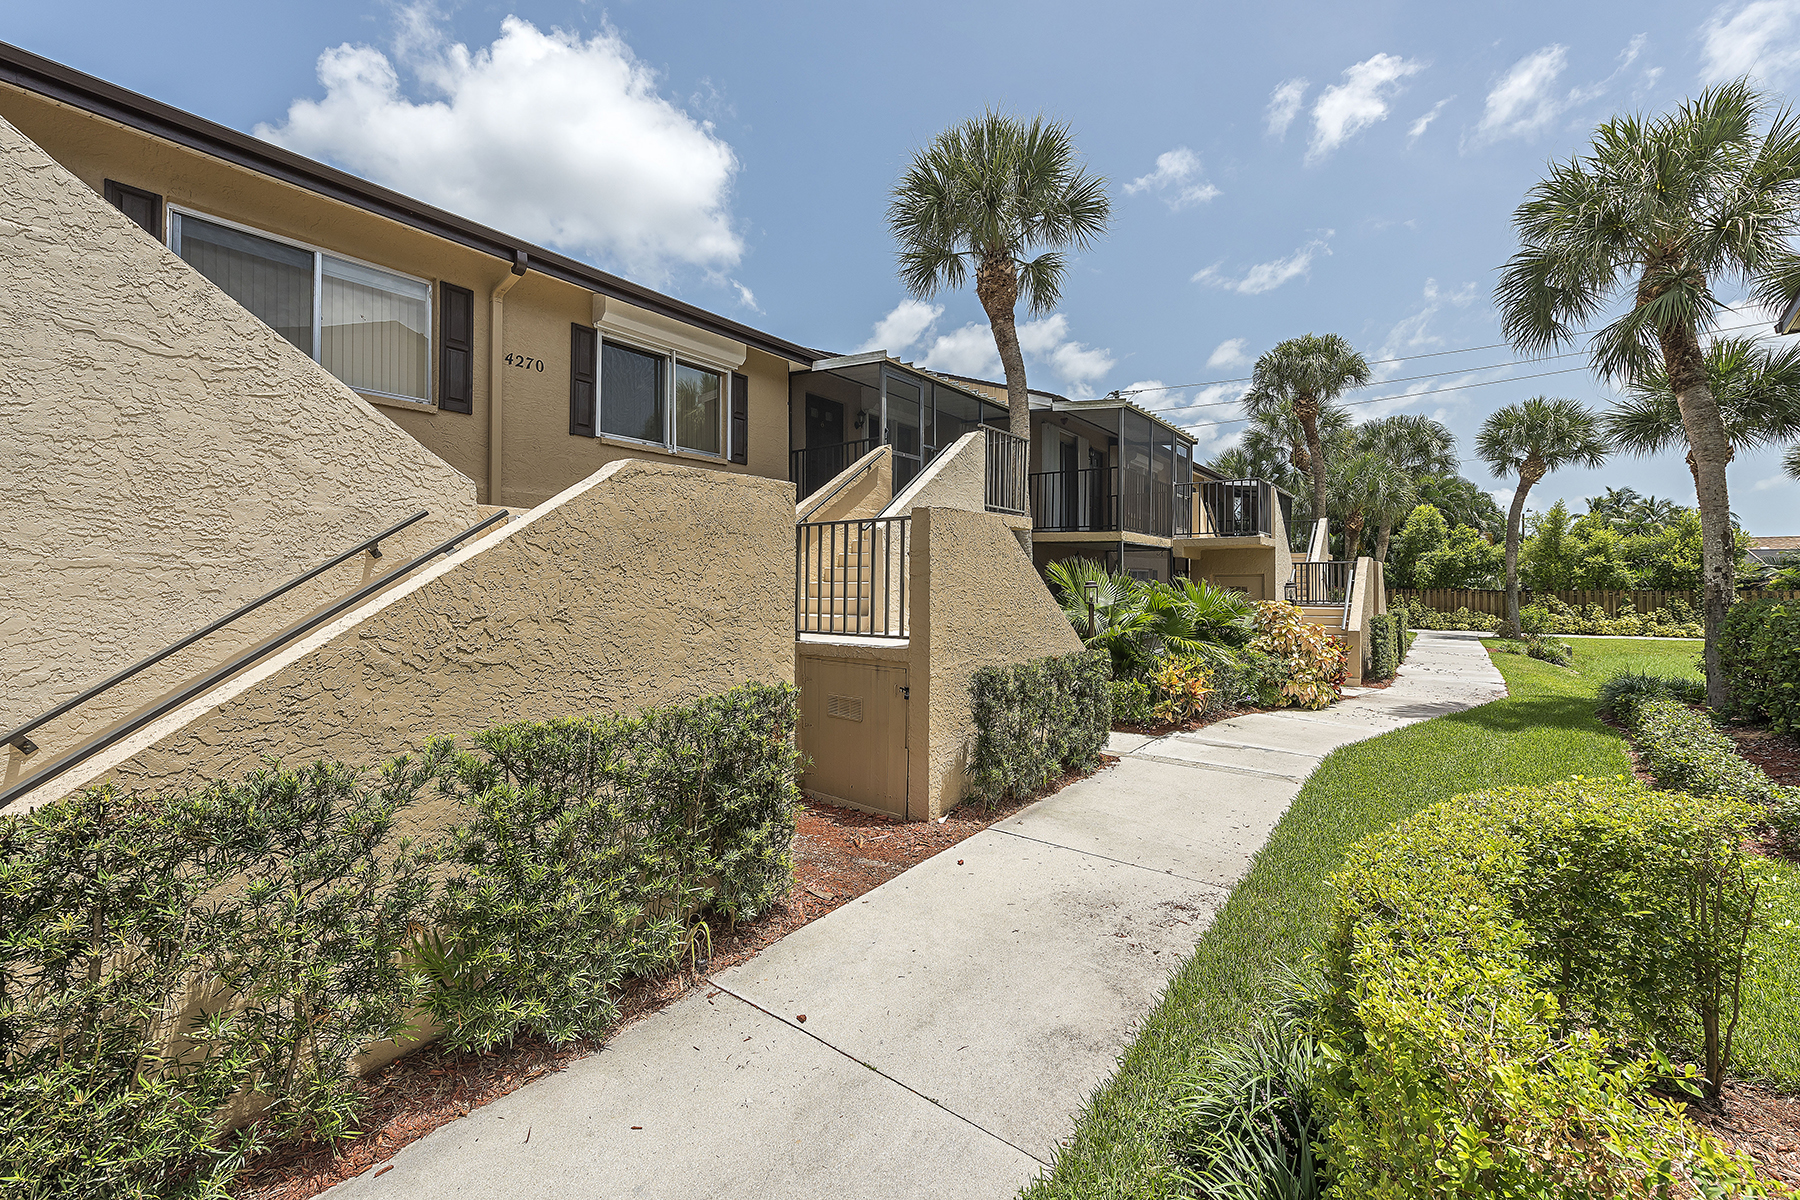 Condominium for Sale at WINTERPARK 4270 Jack Frost Ct 4606, Naples, Florida 34112 United States